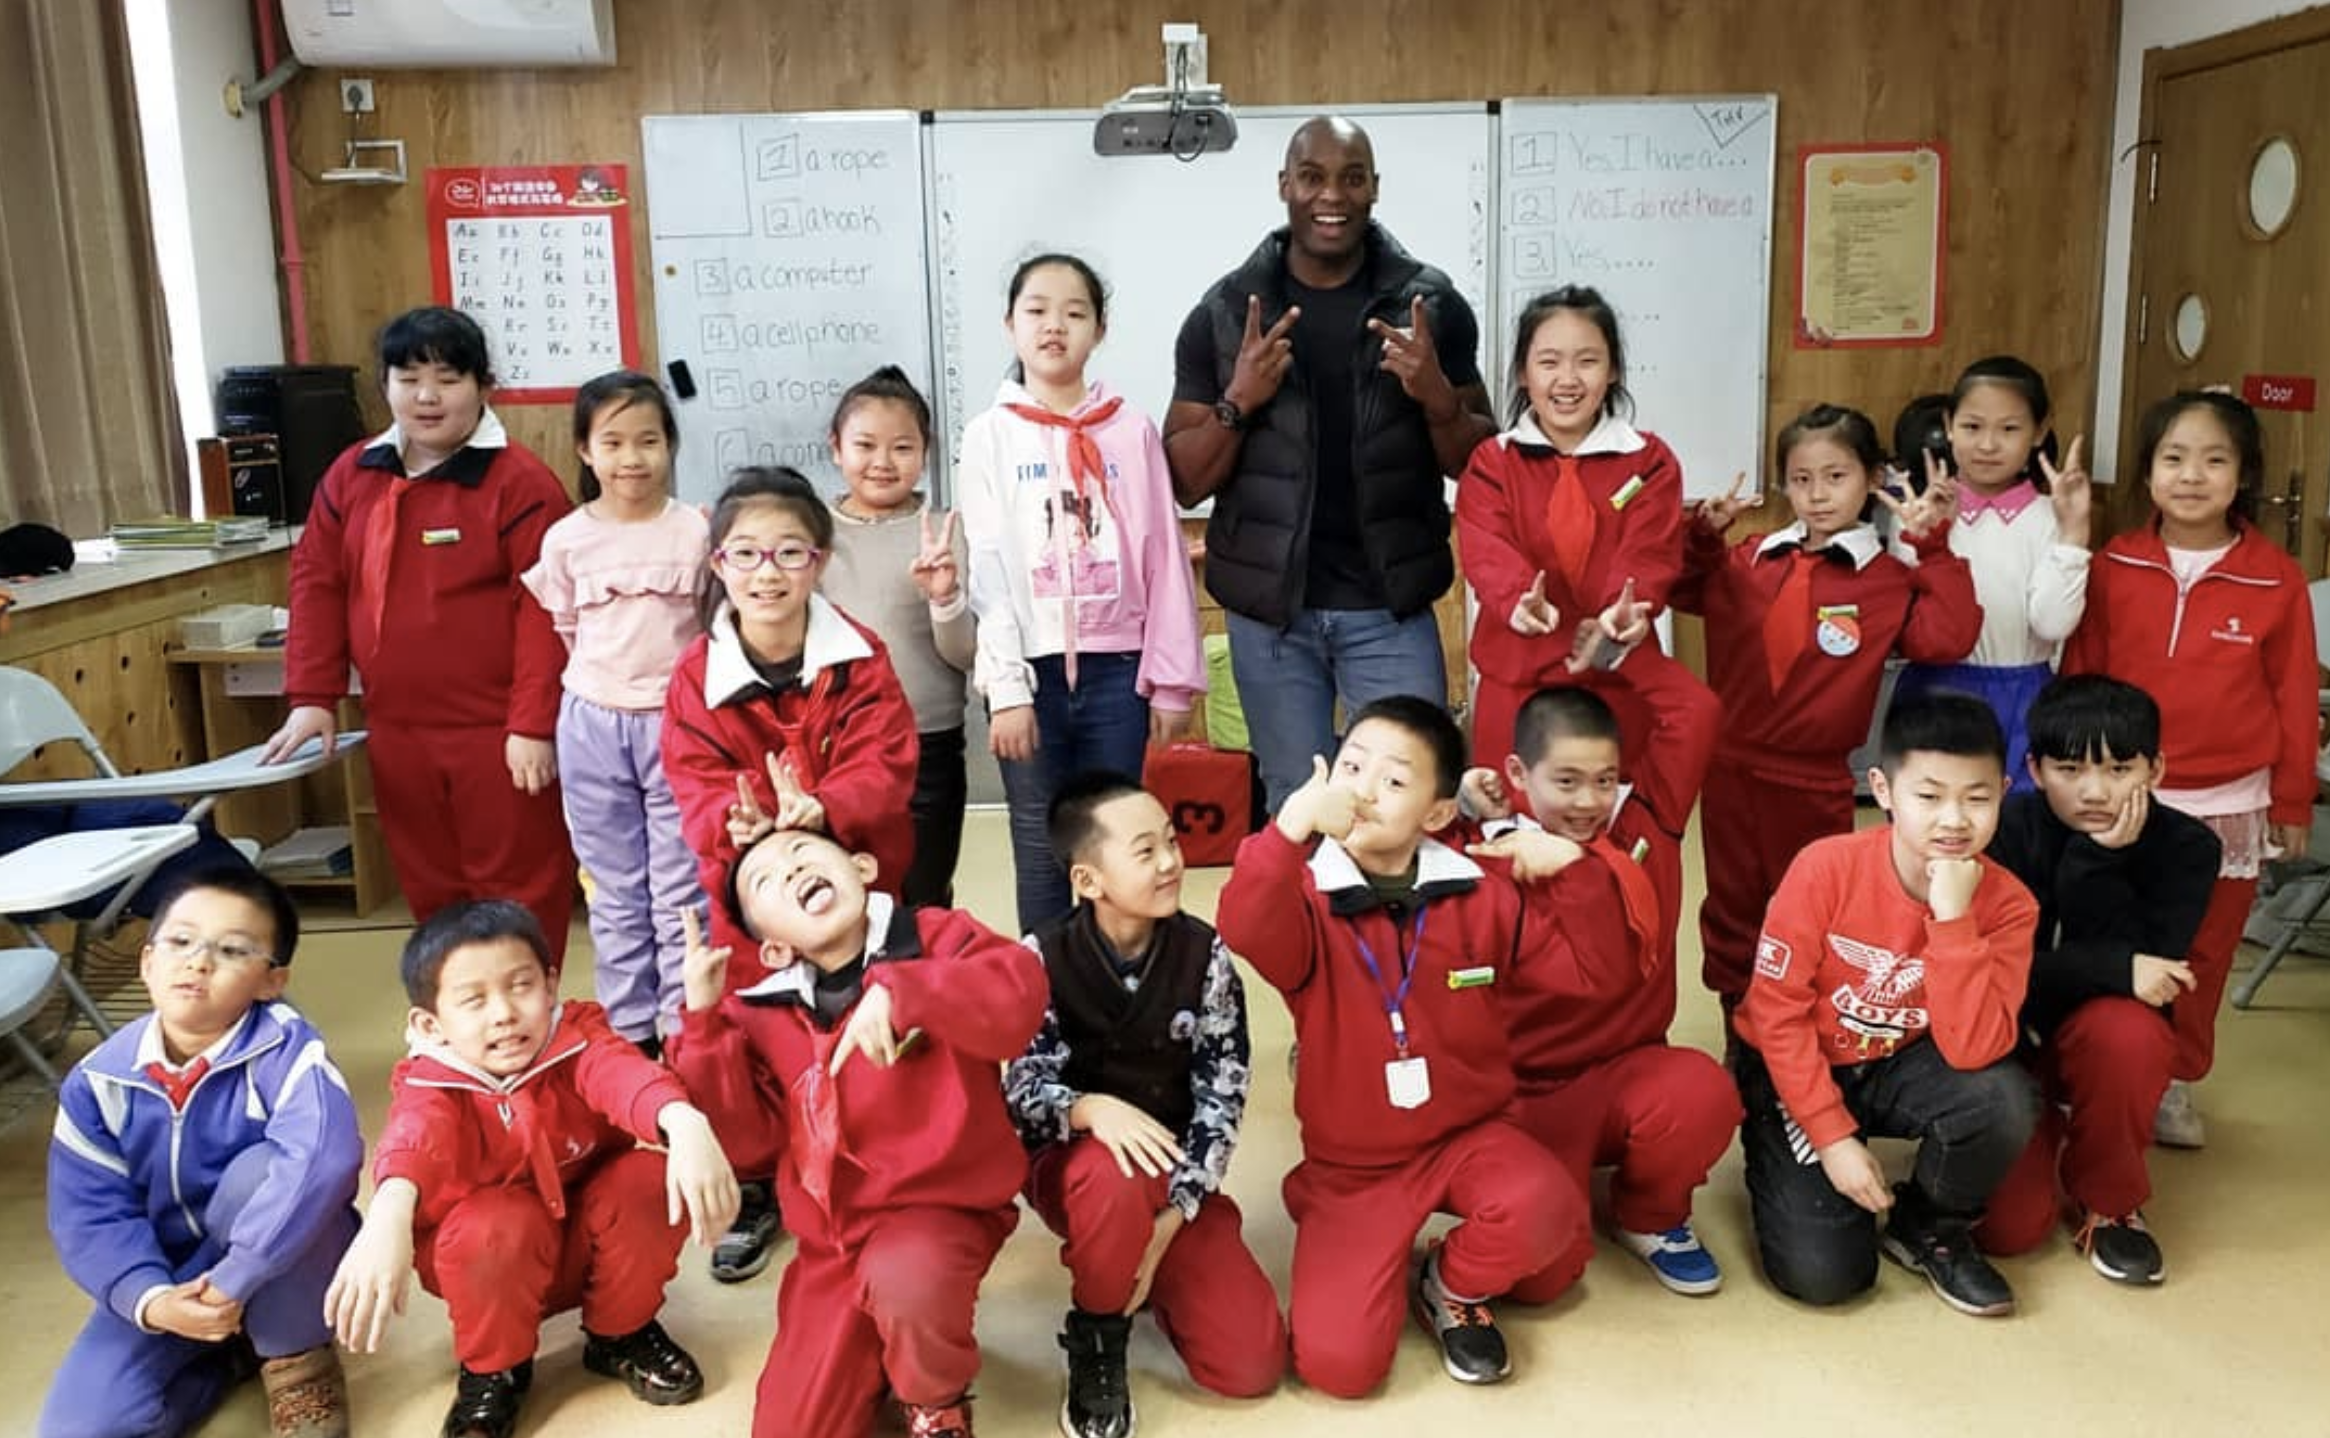 Teach English in China with International TEFL Academy